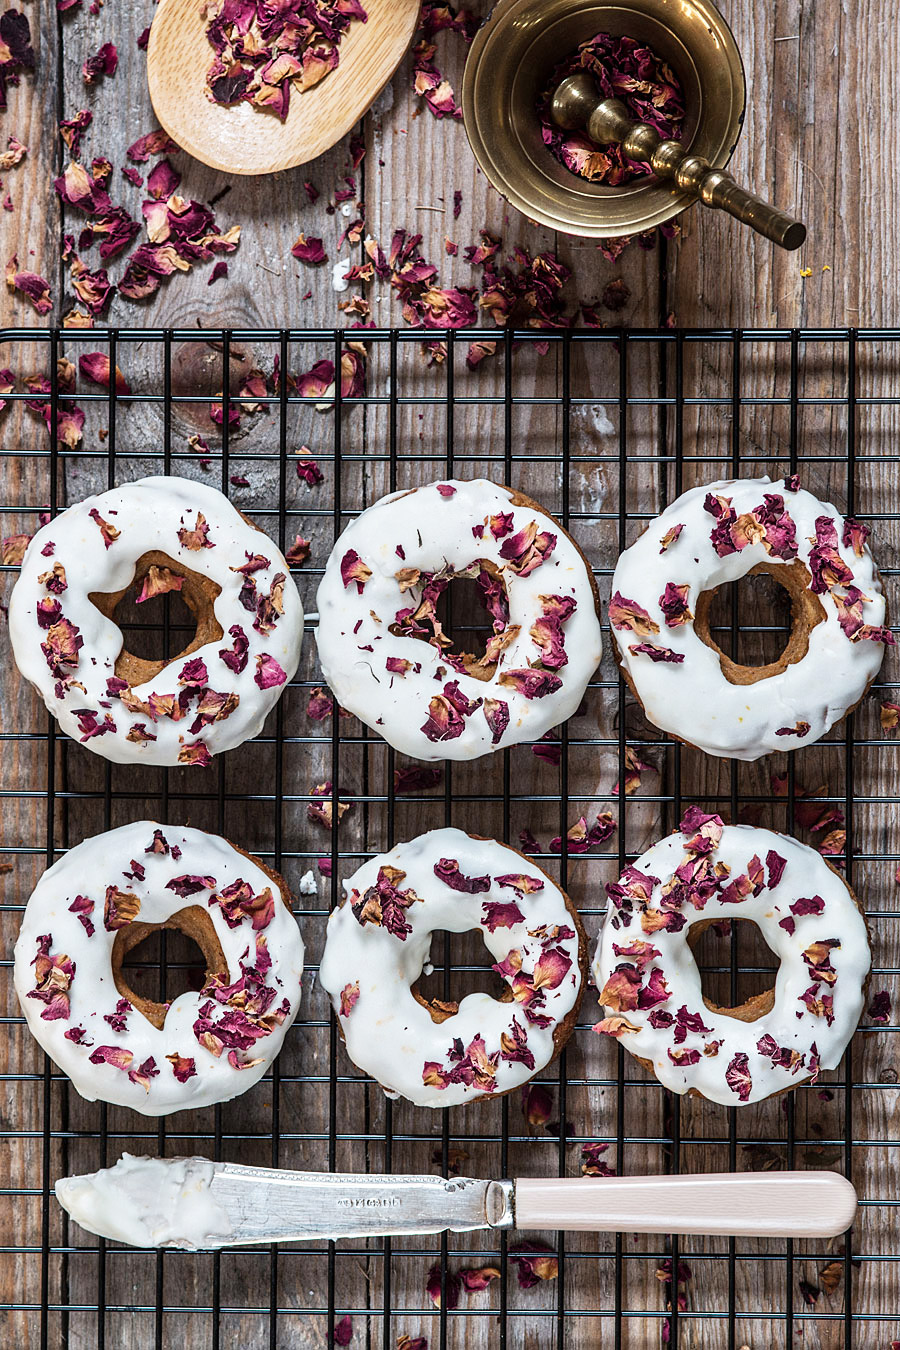 Paleo doughnuts with citrus glaze and edible roses | Lau Sunday cooks